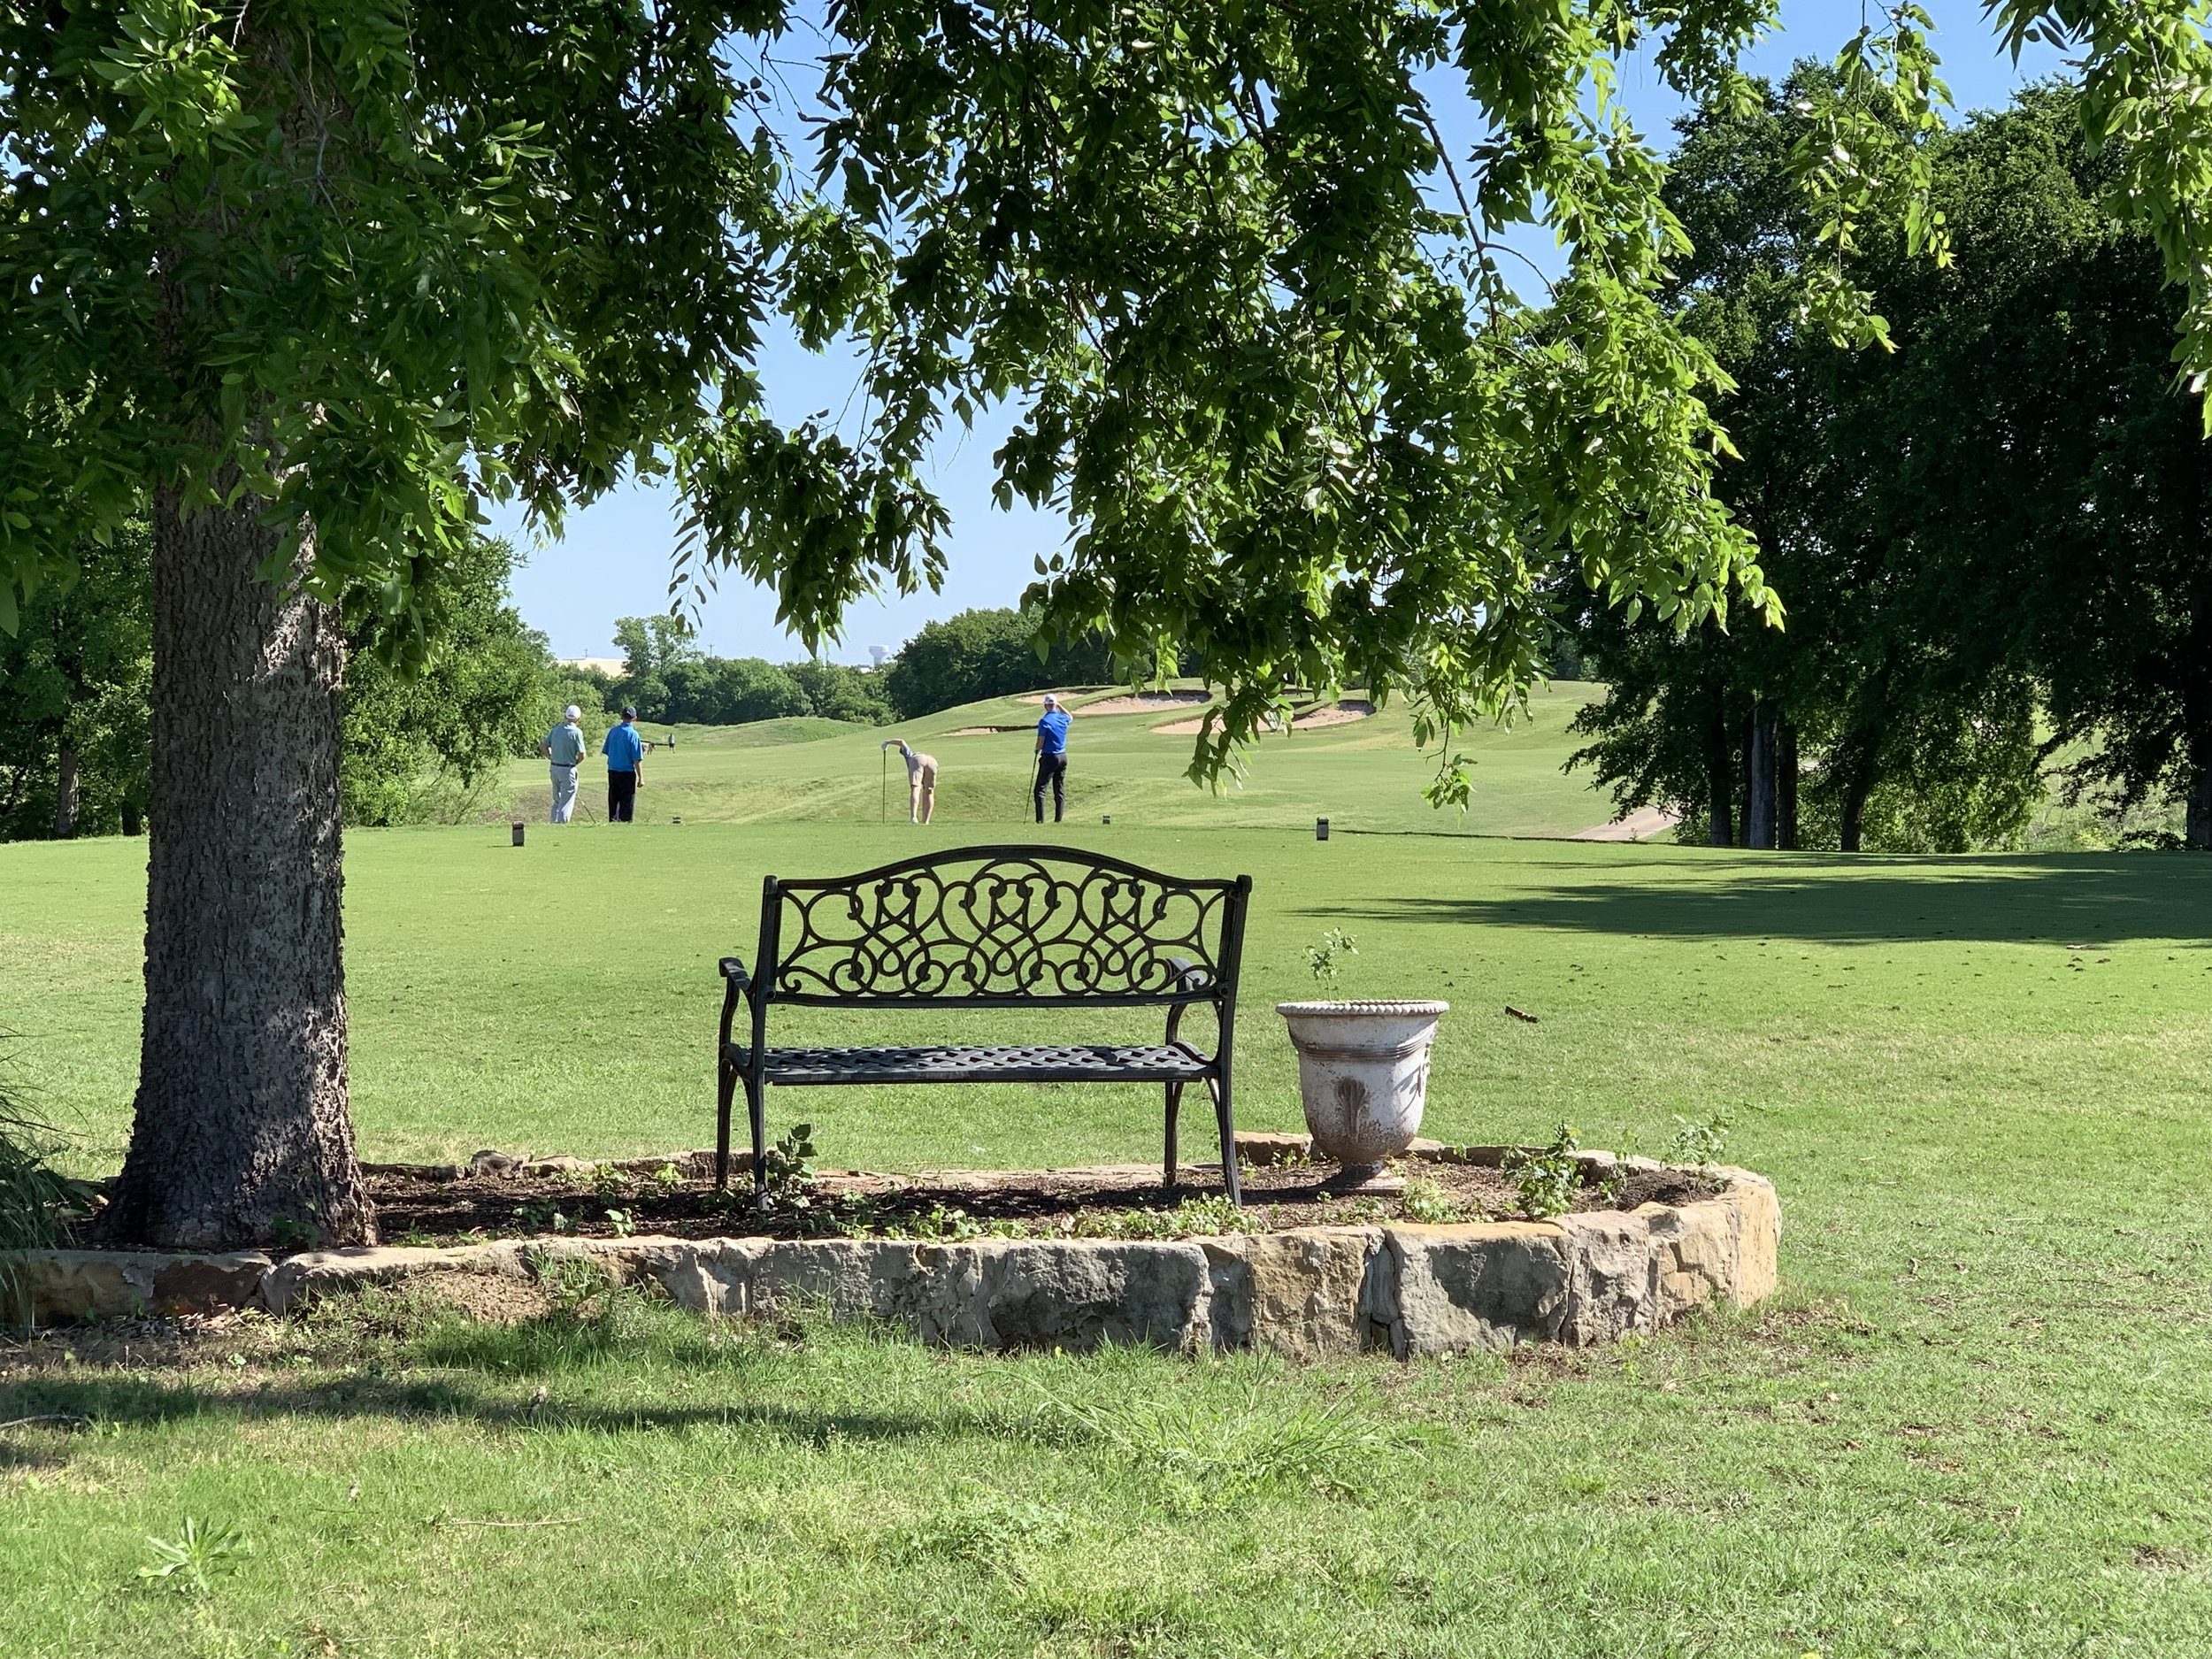 Photo Apr 26, 10 02 57 AM.jpg